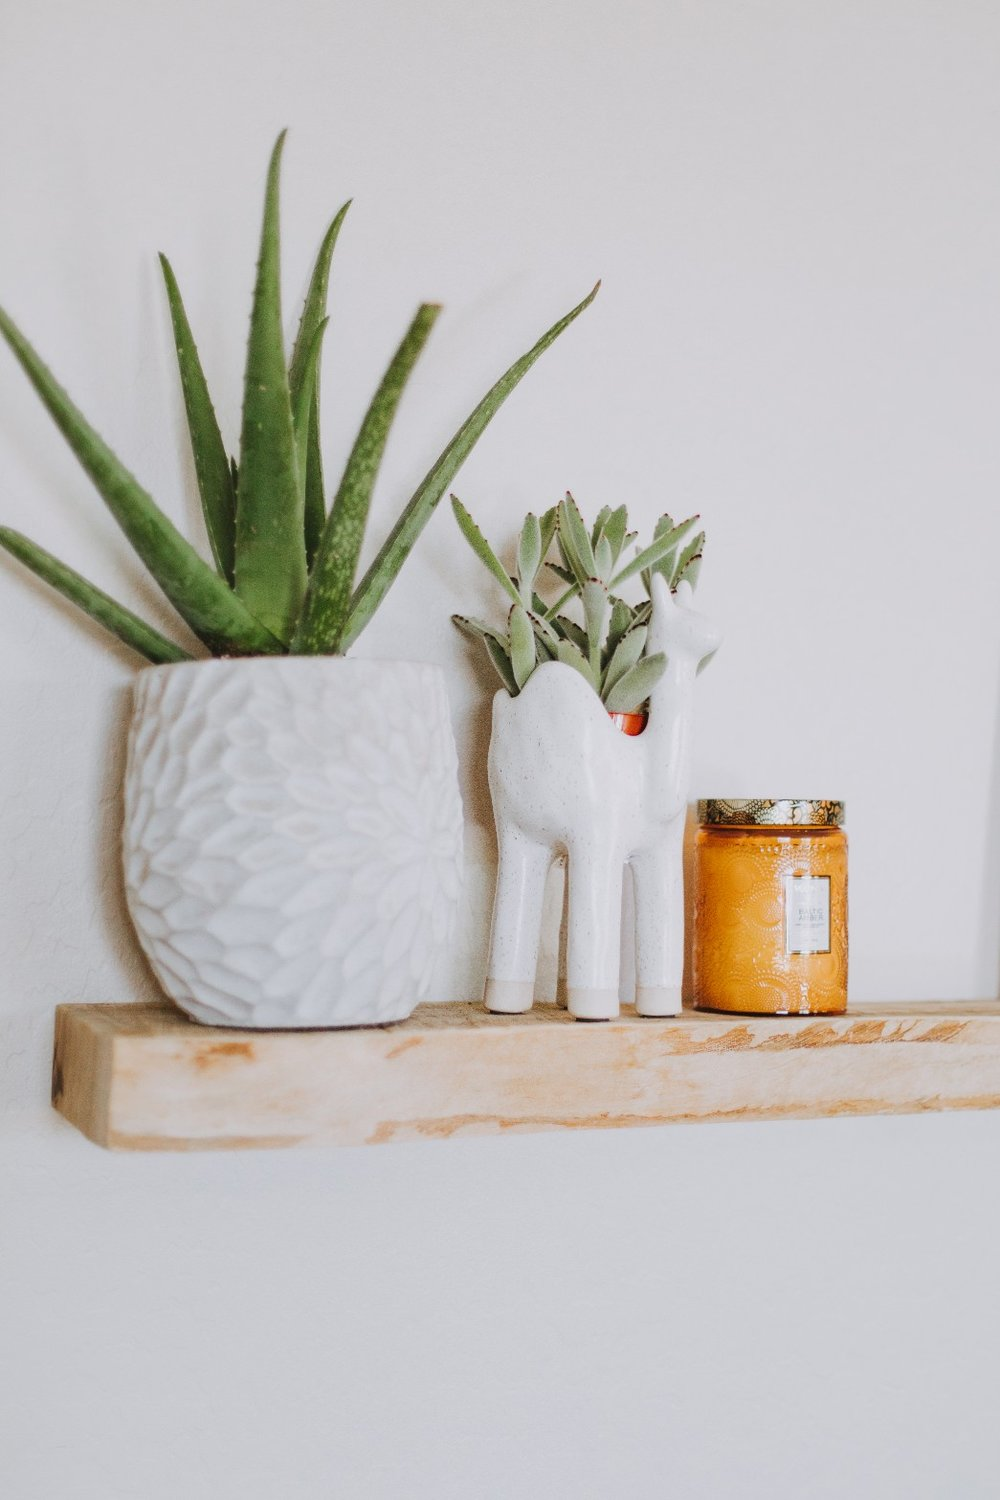 2. Aloe plant - This plant only needs to be watered every couple of weeks, allowing the soil to dry up to two inches below the surface! This plant needs a good amount of sunlight so be sure to place it in a room with a few windows.